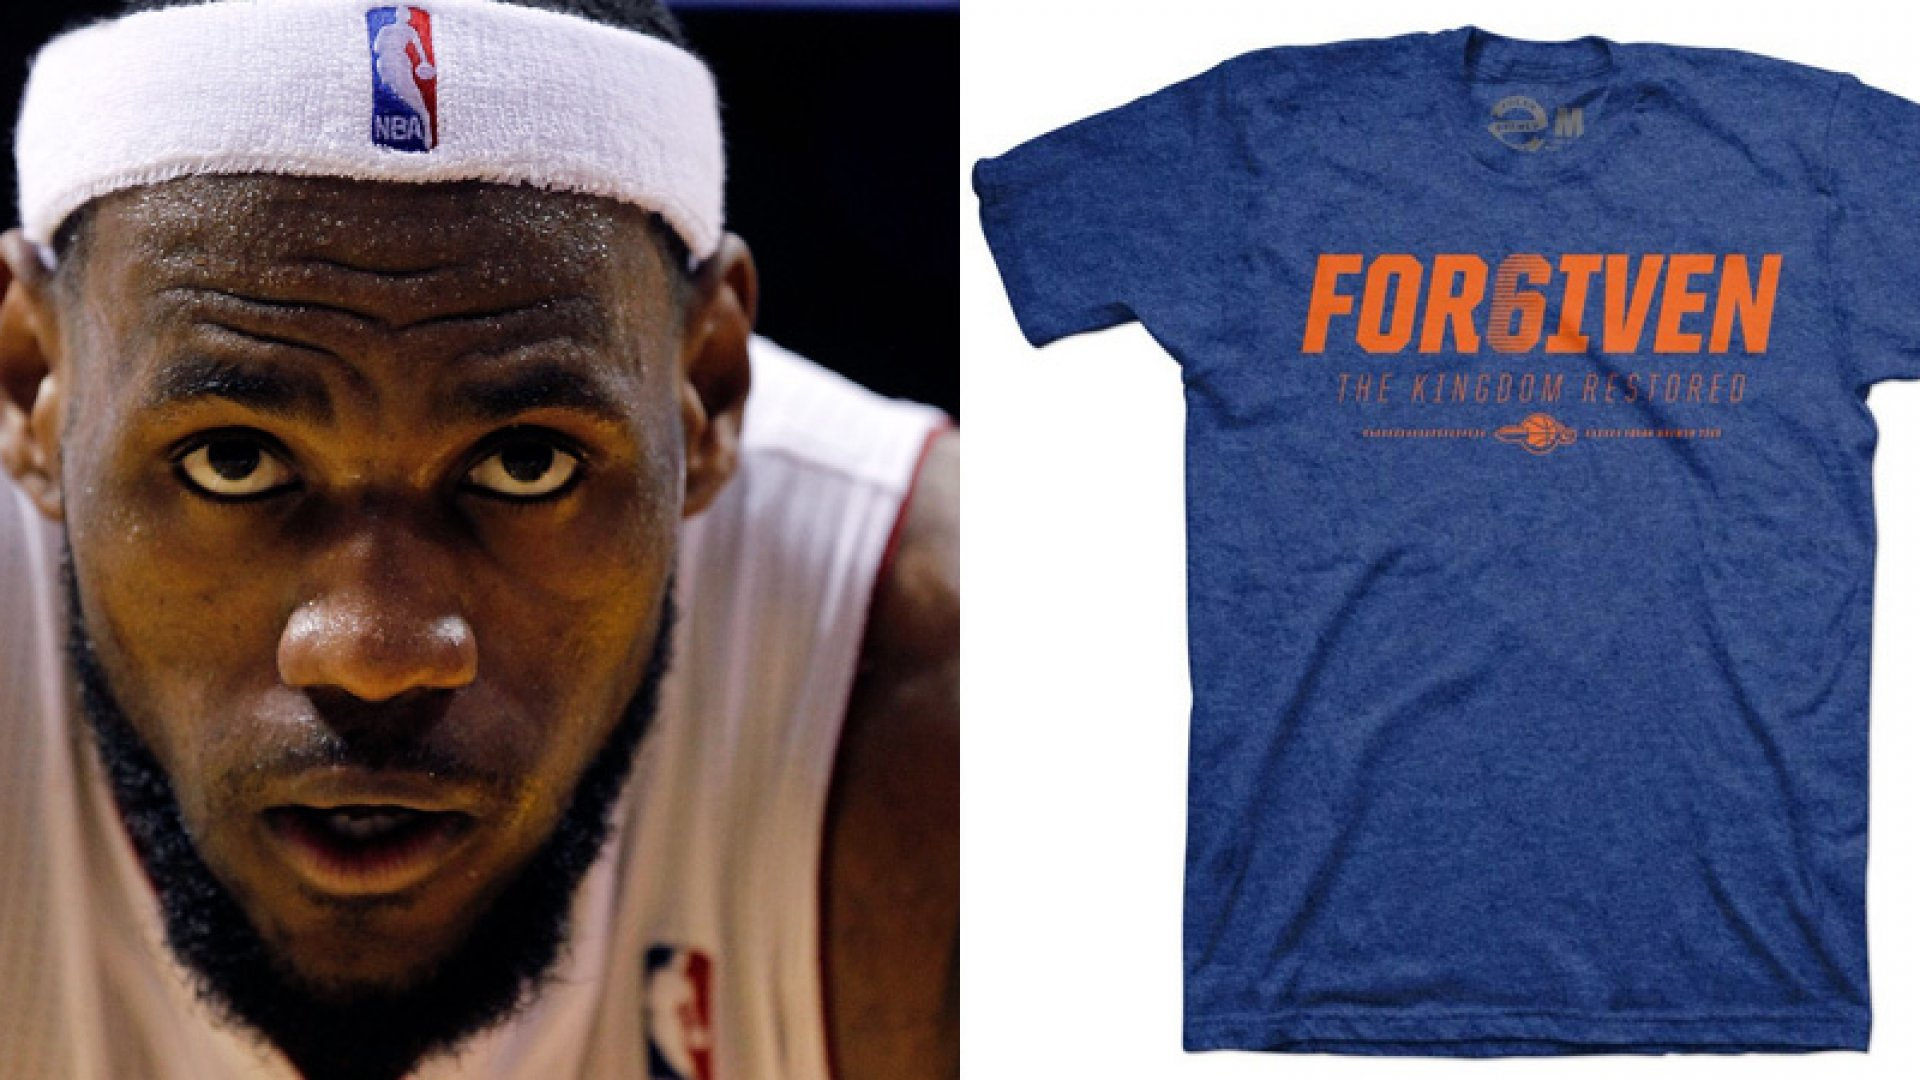 How a T-Shirt Company Capitalized on King James' Return